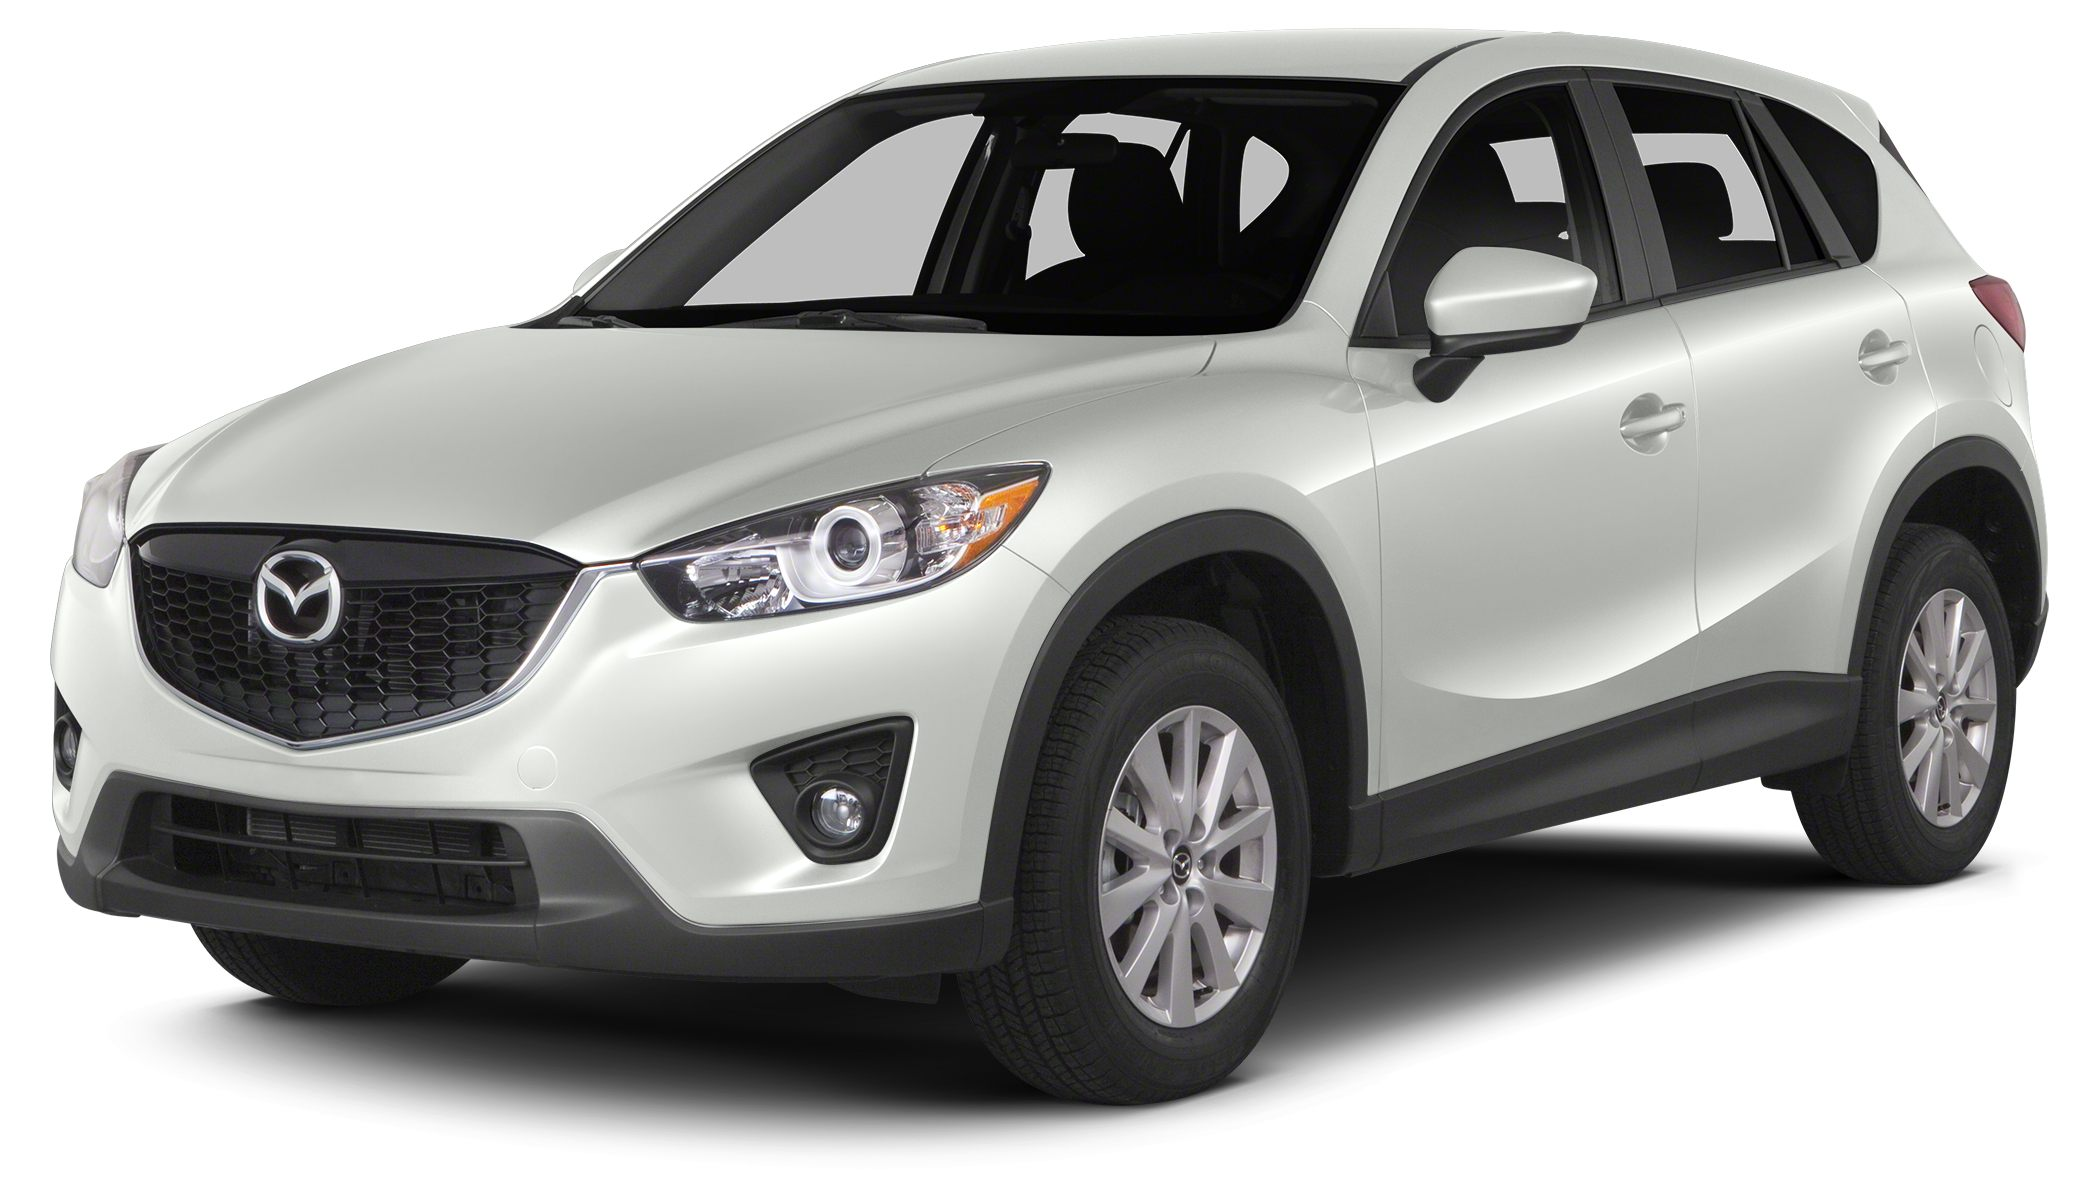 2014 Mazda CX-5 Grand Touring This 2014 Mazda CX-5 features a 25L 4 Cyls Engine Rear Vision Came